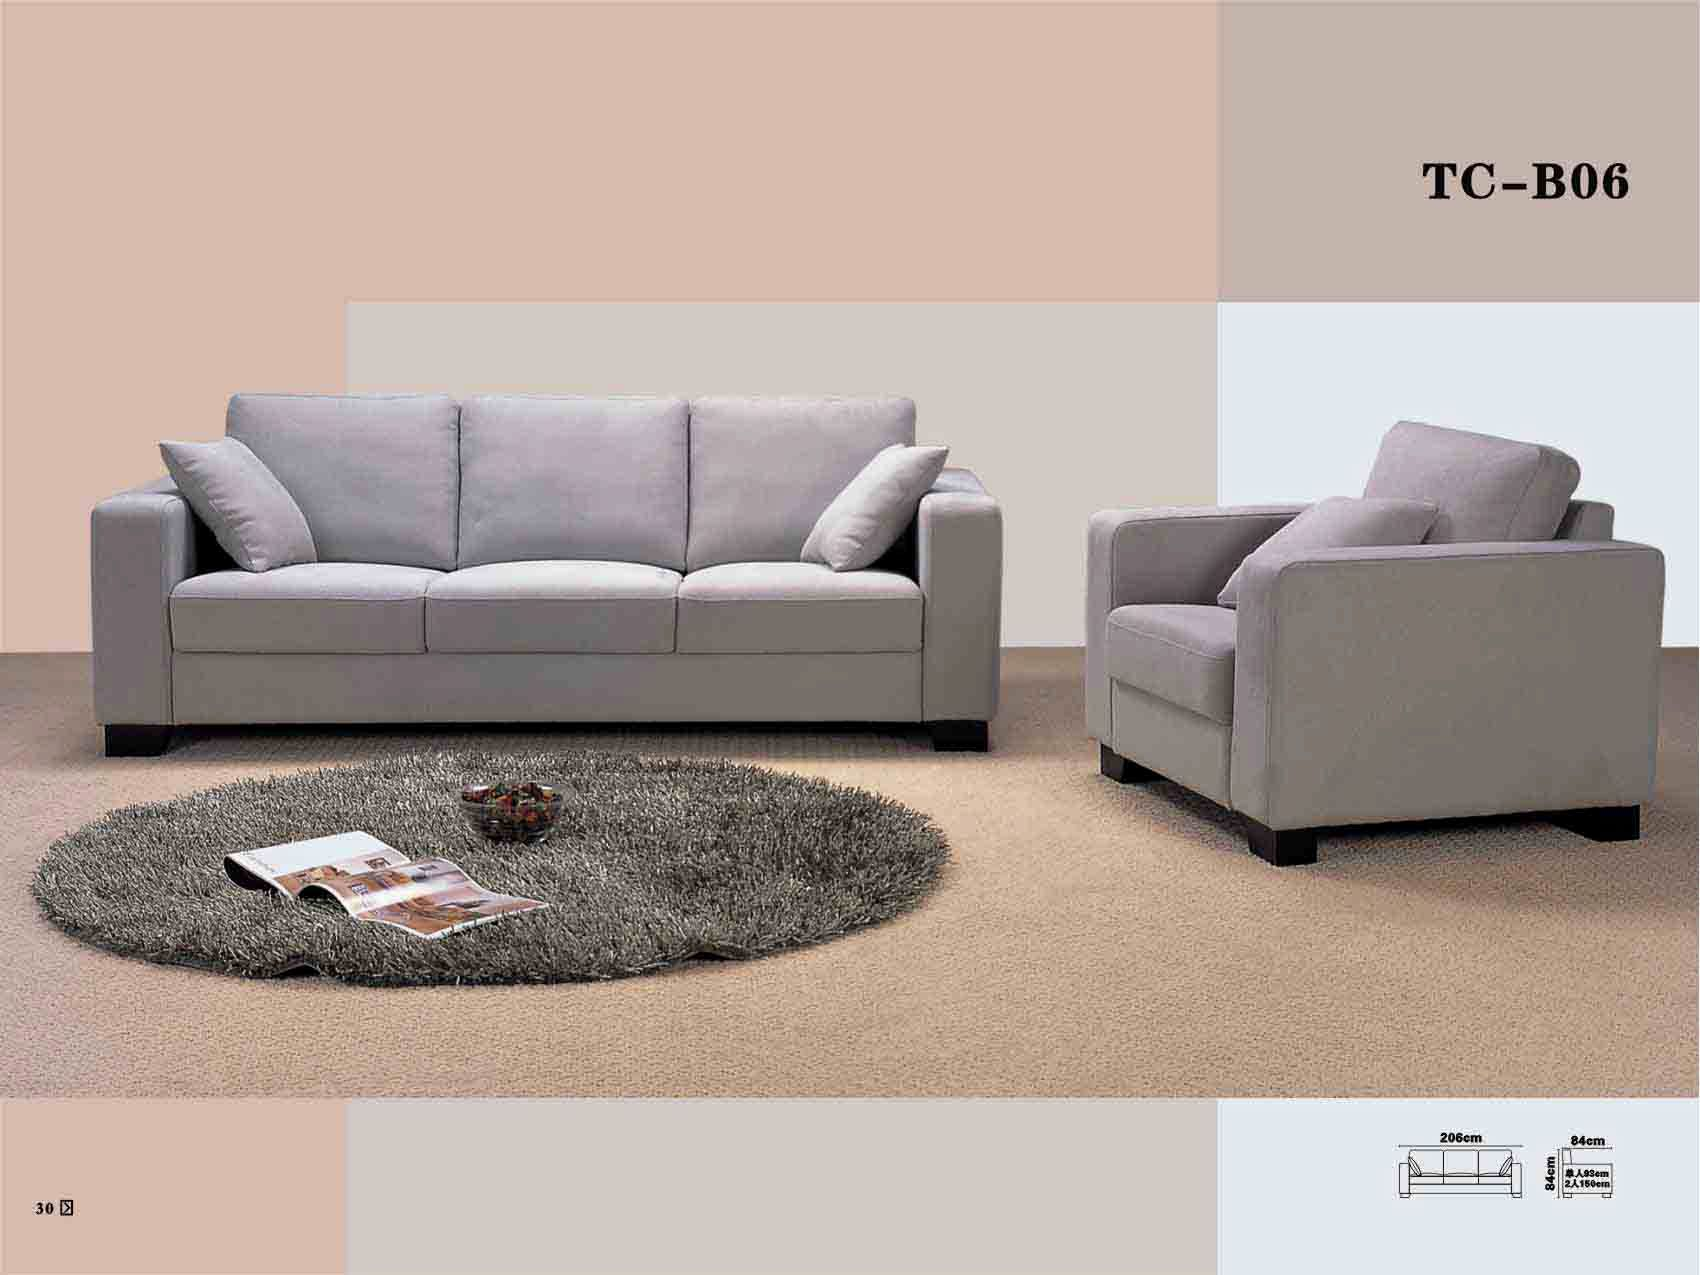 stylish gray tufted sectional sofa concept-Fresh Gray Tufted Sectional sofa Photo